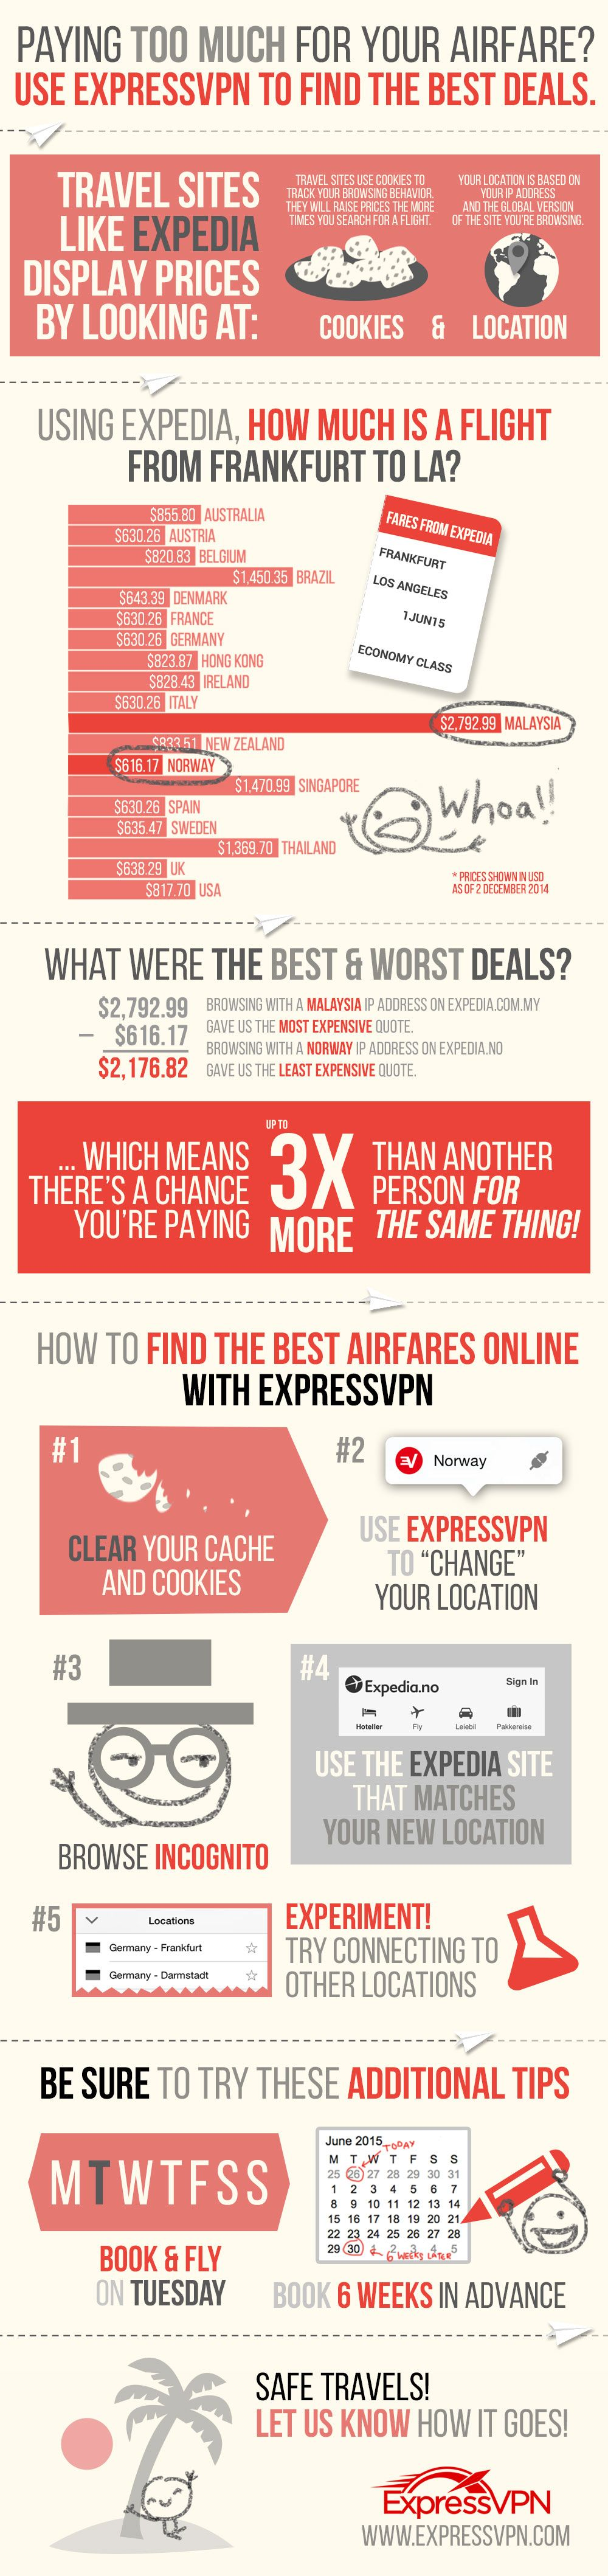 You Re Paying Too Much For Airfare Use Expressvpn To Find The Cheapest Fares Daily Infographicdaily Infographic Travel Infographic Airfare Travel Tips